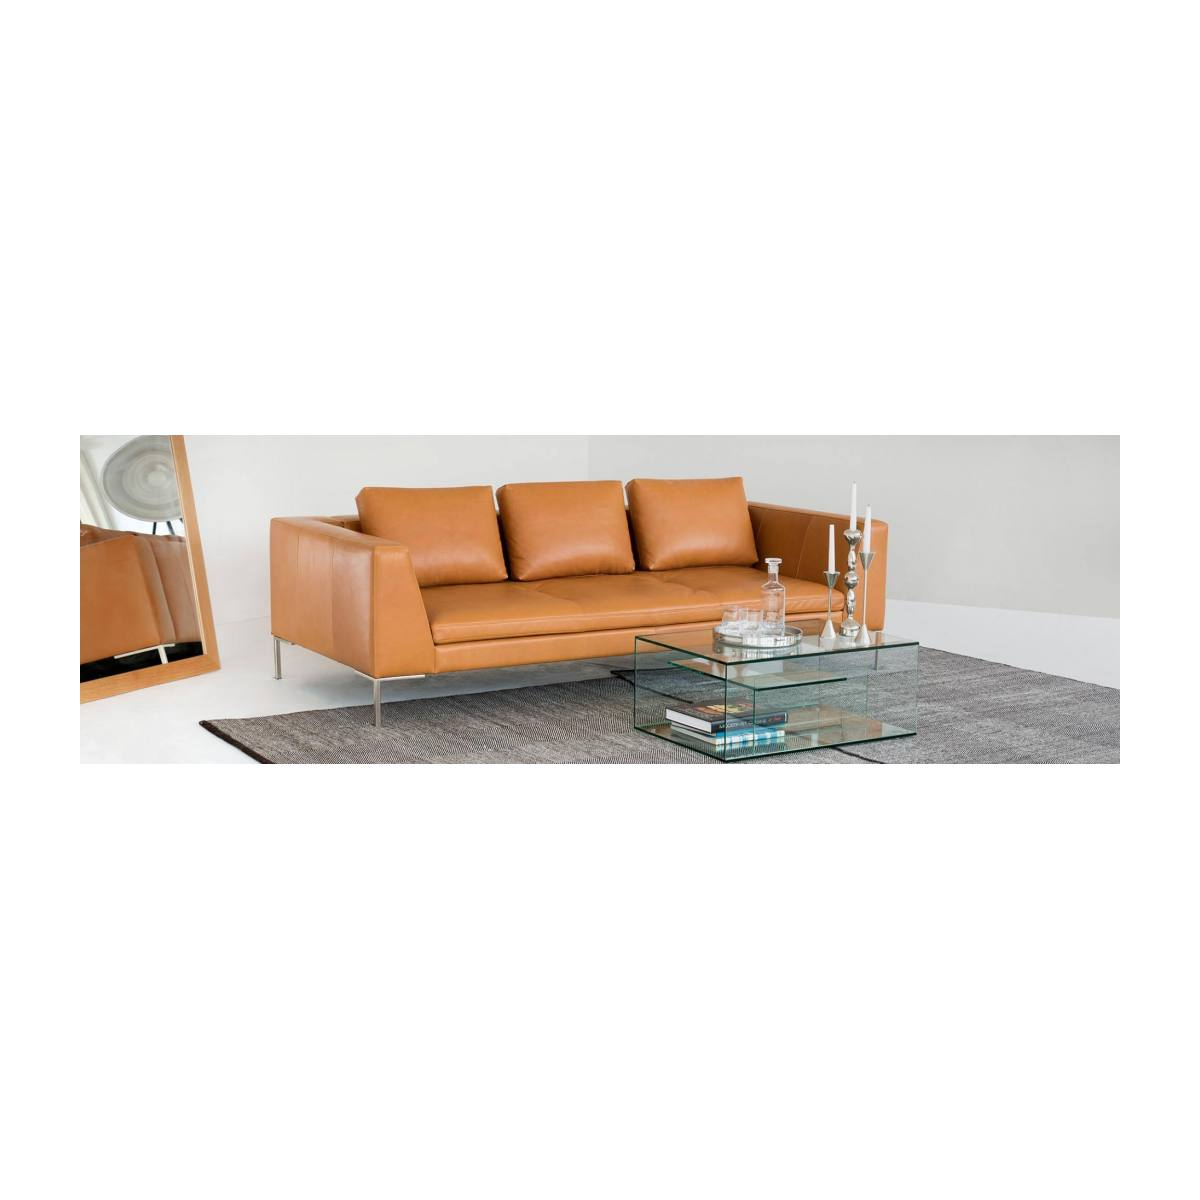 3 seater sofa in Eton veined leather, brown n°11